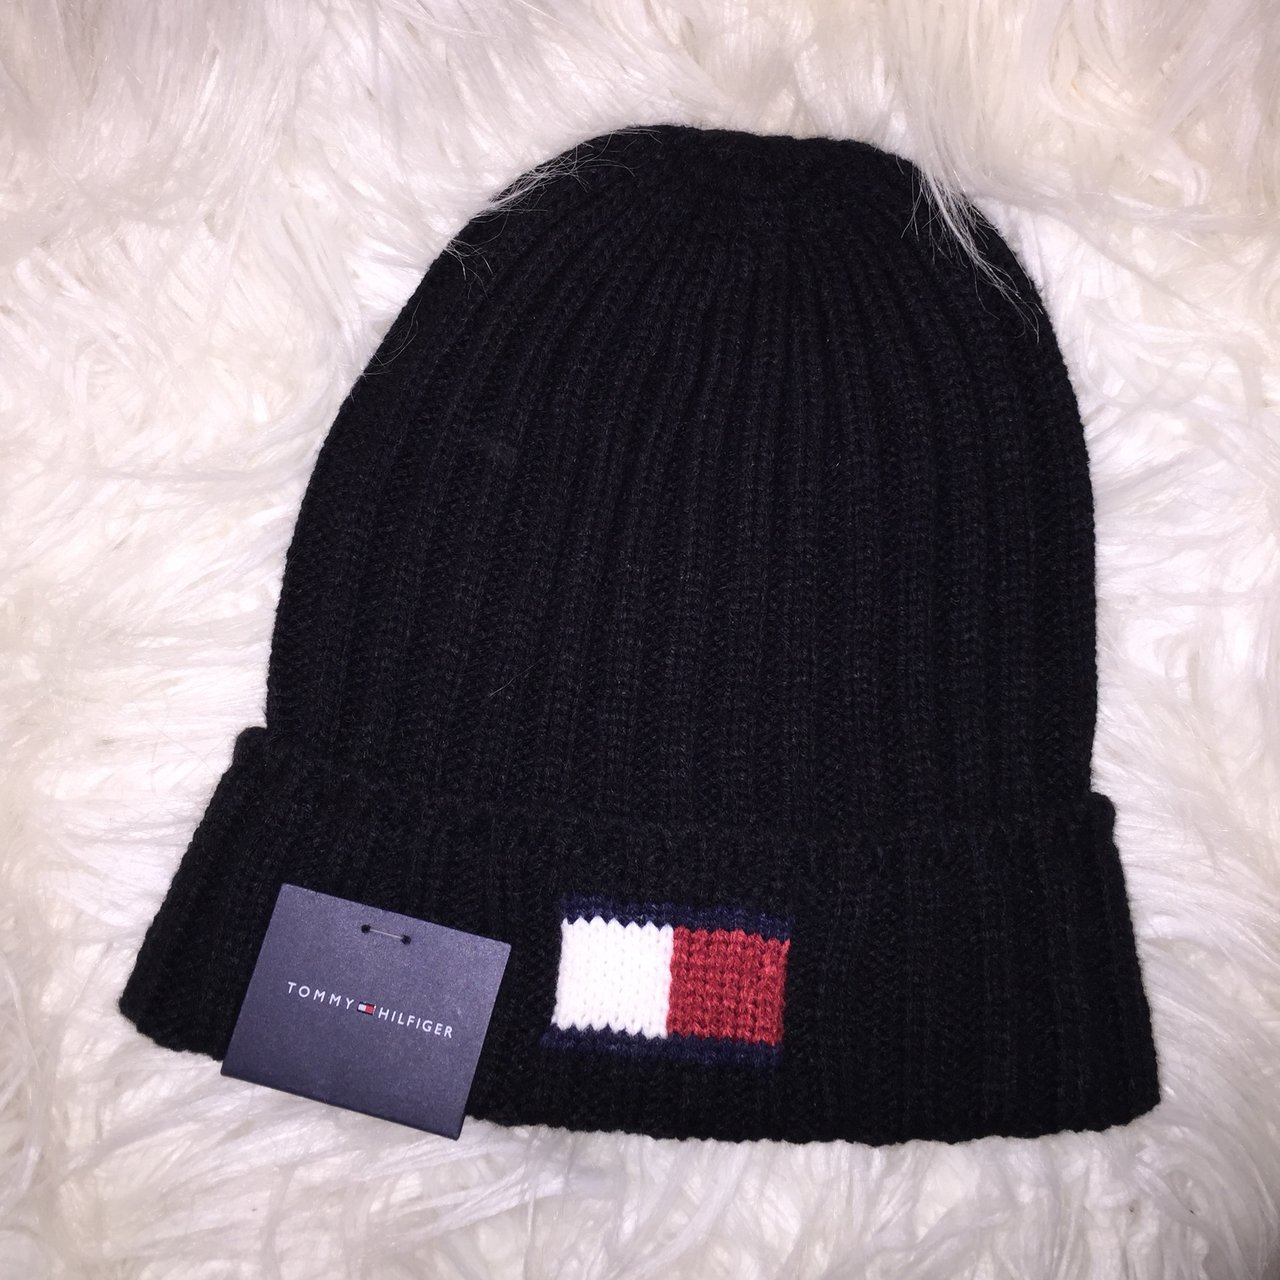 17fb66ef84e Black Tommy Hilfiger logo beanie. Never worn before and has - Depop